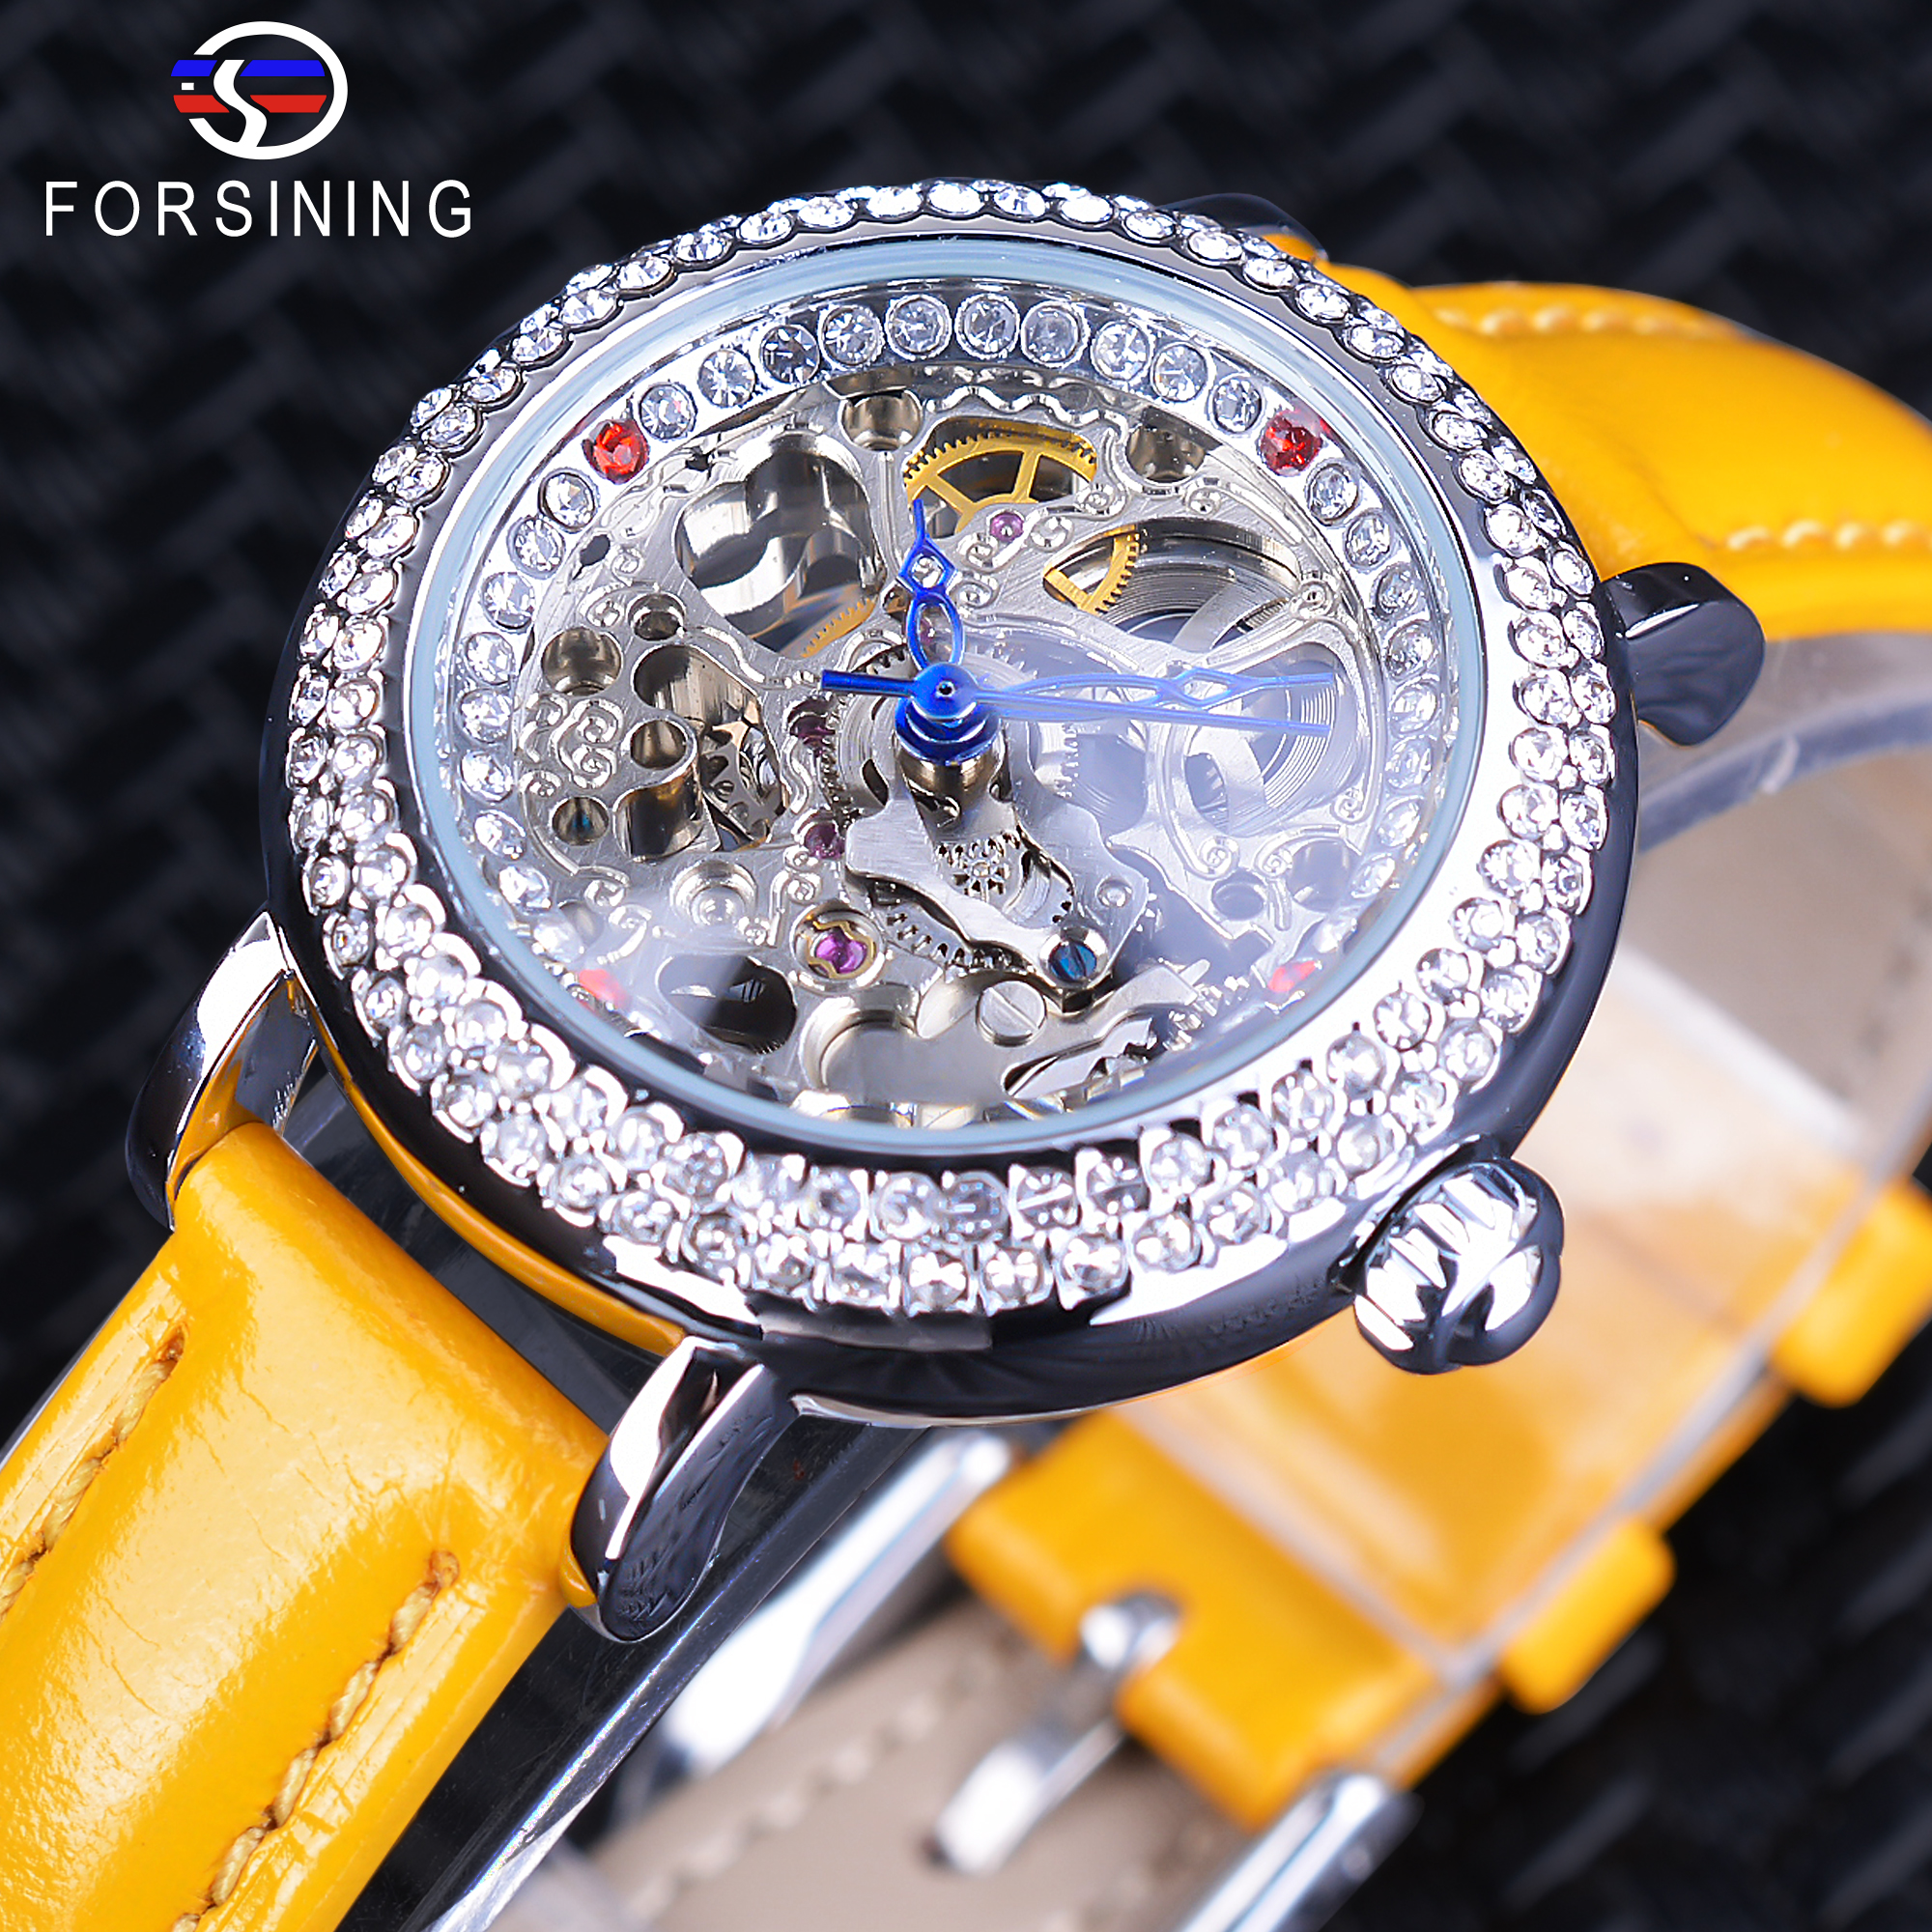 Forsining Yellow Genuine Leather Transparent Flower Back Lady Fashion Skeleton Diamond Female Clock Women Mechanical Watches<br>